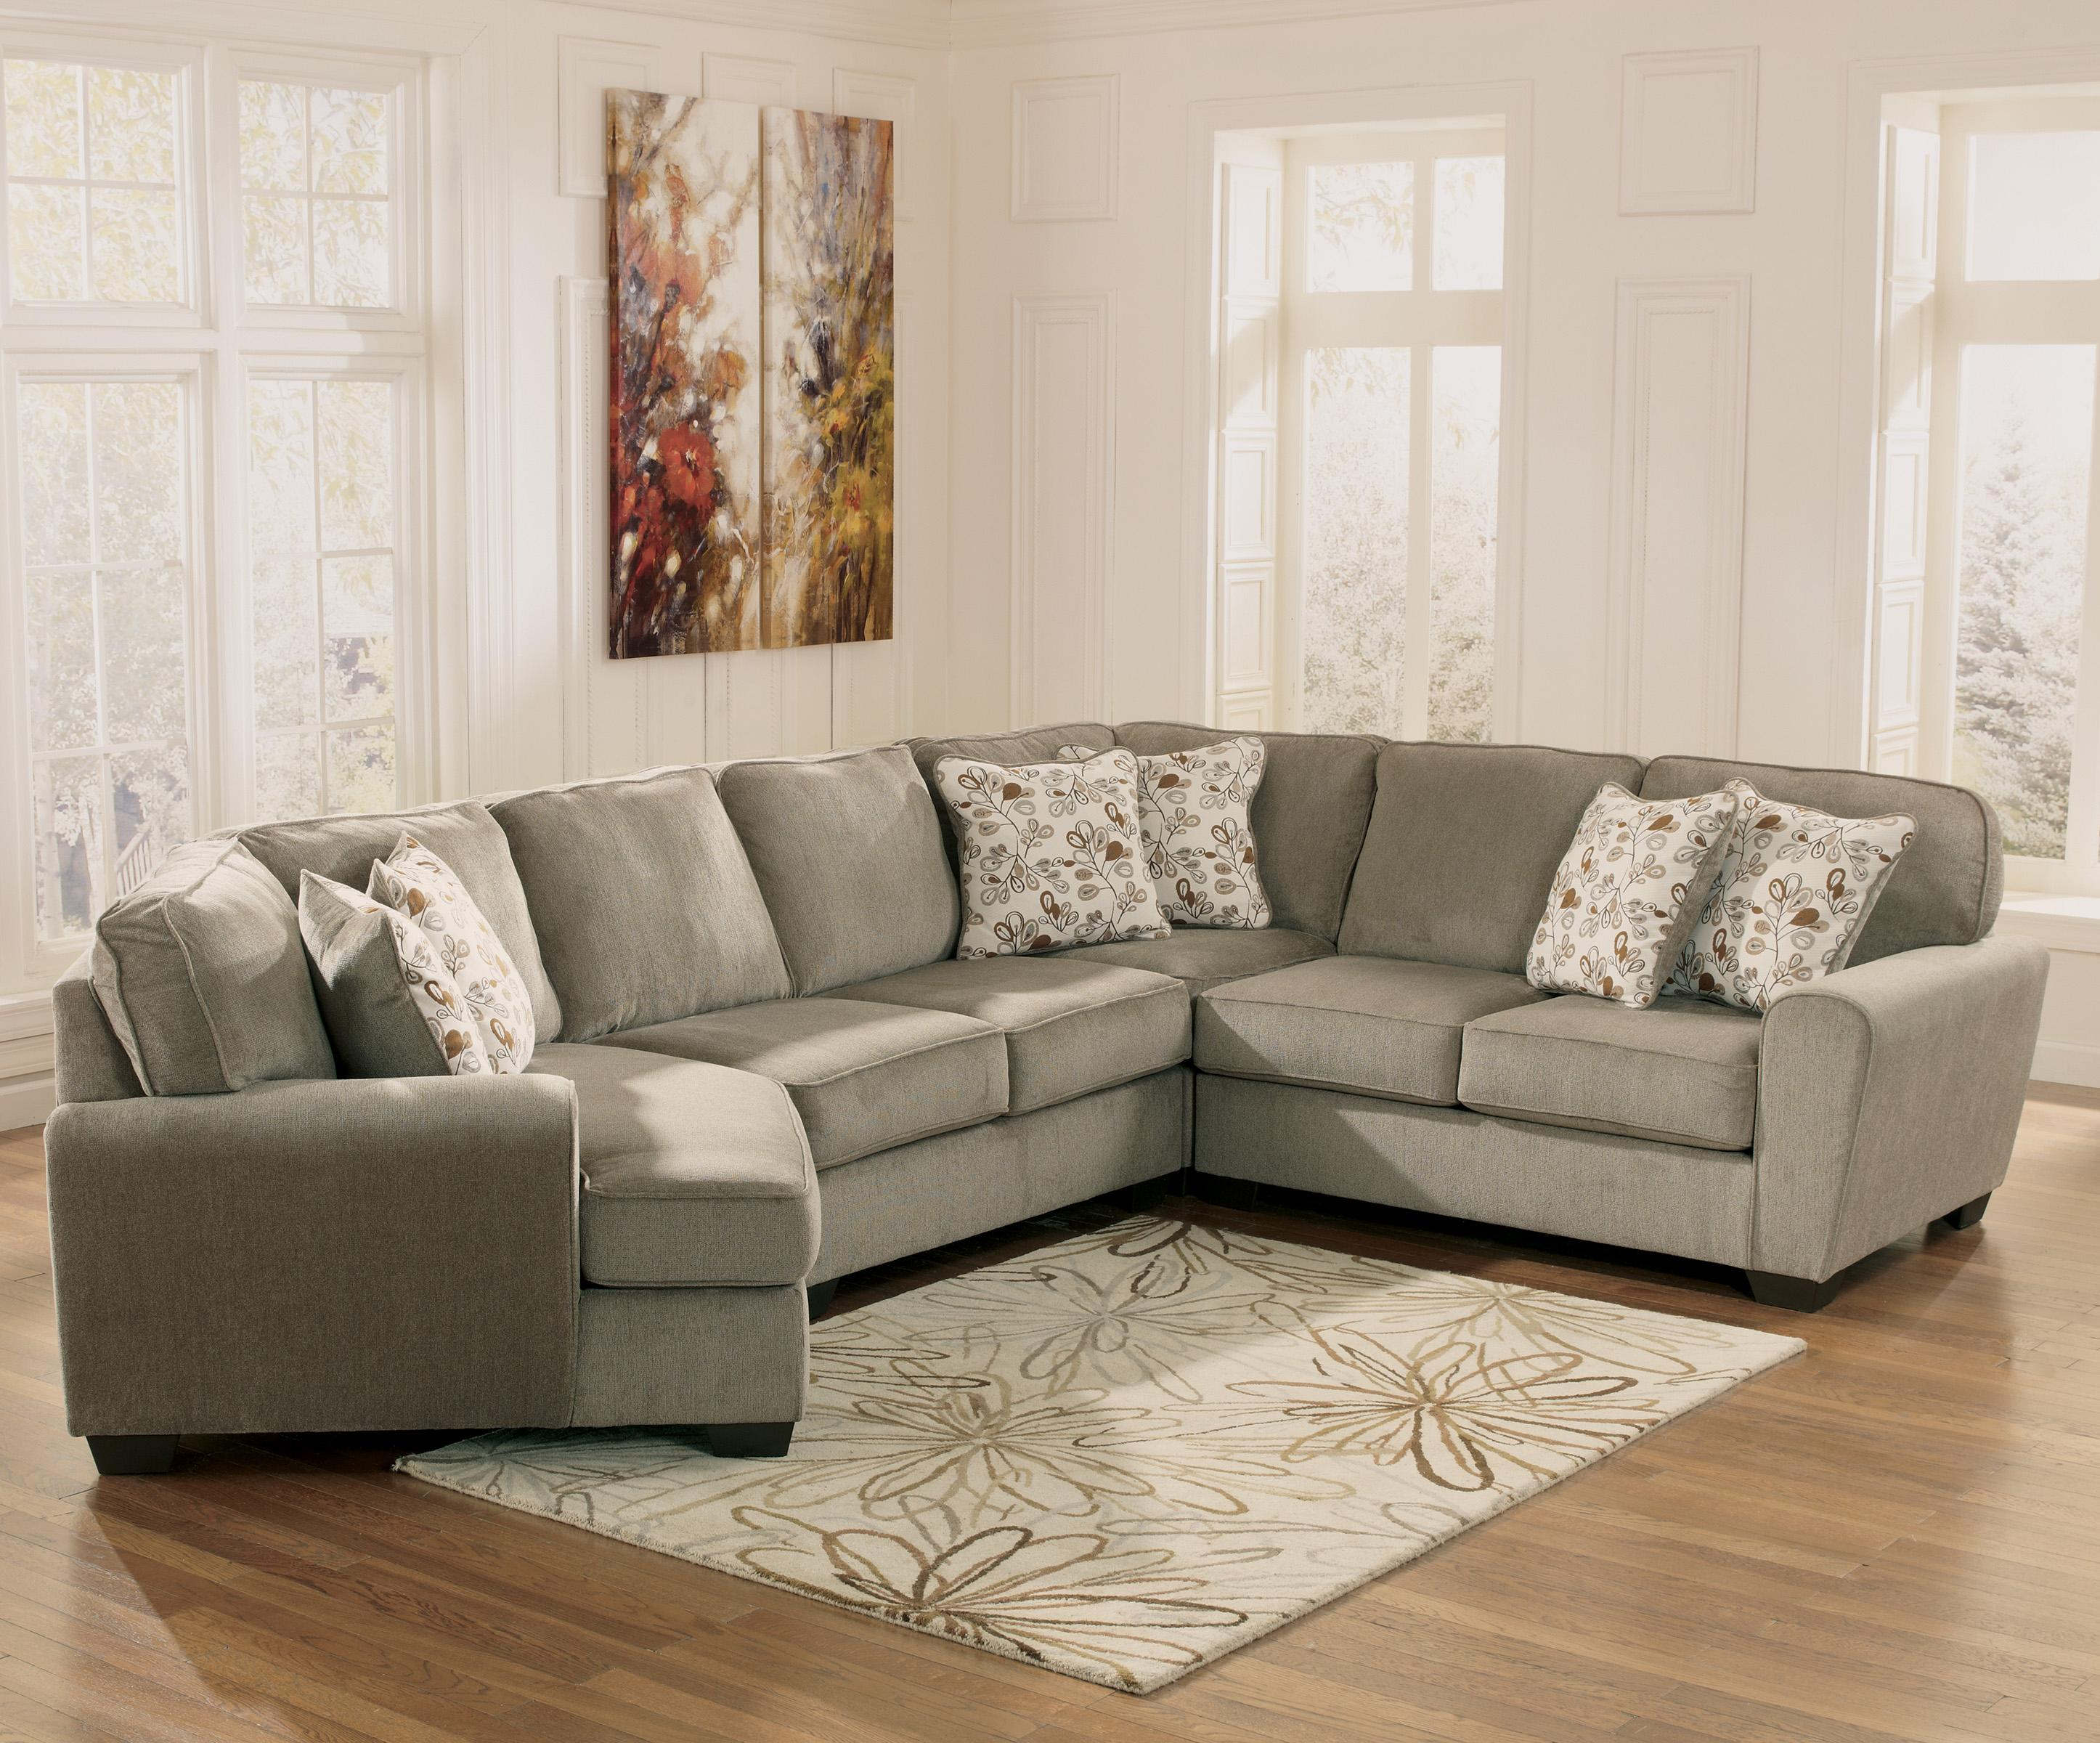 Patola Park - Patina 4-Piece Small Sectional with Left Cuddler by Ashley Furniture at Lapeer Furniture & Mattress Center